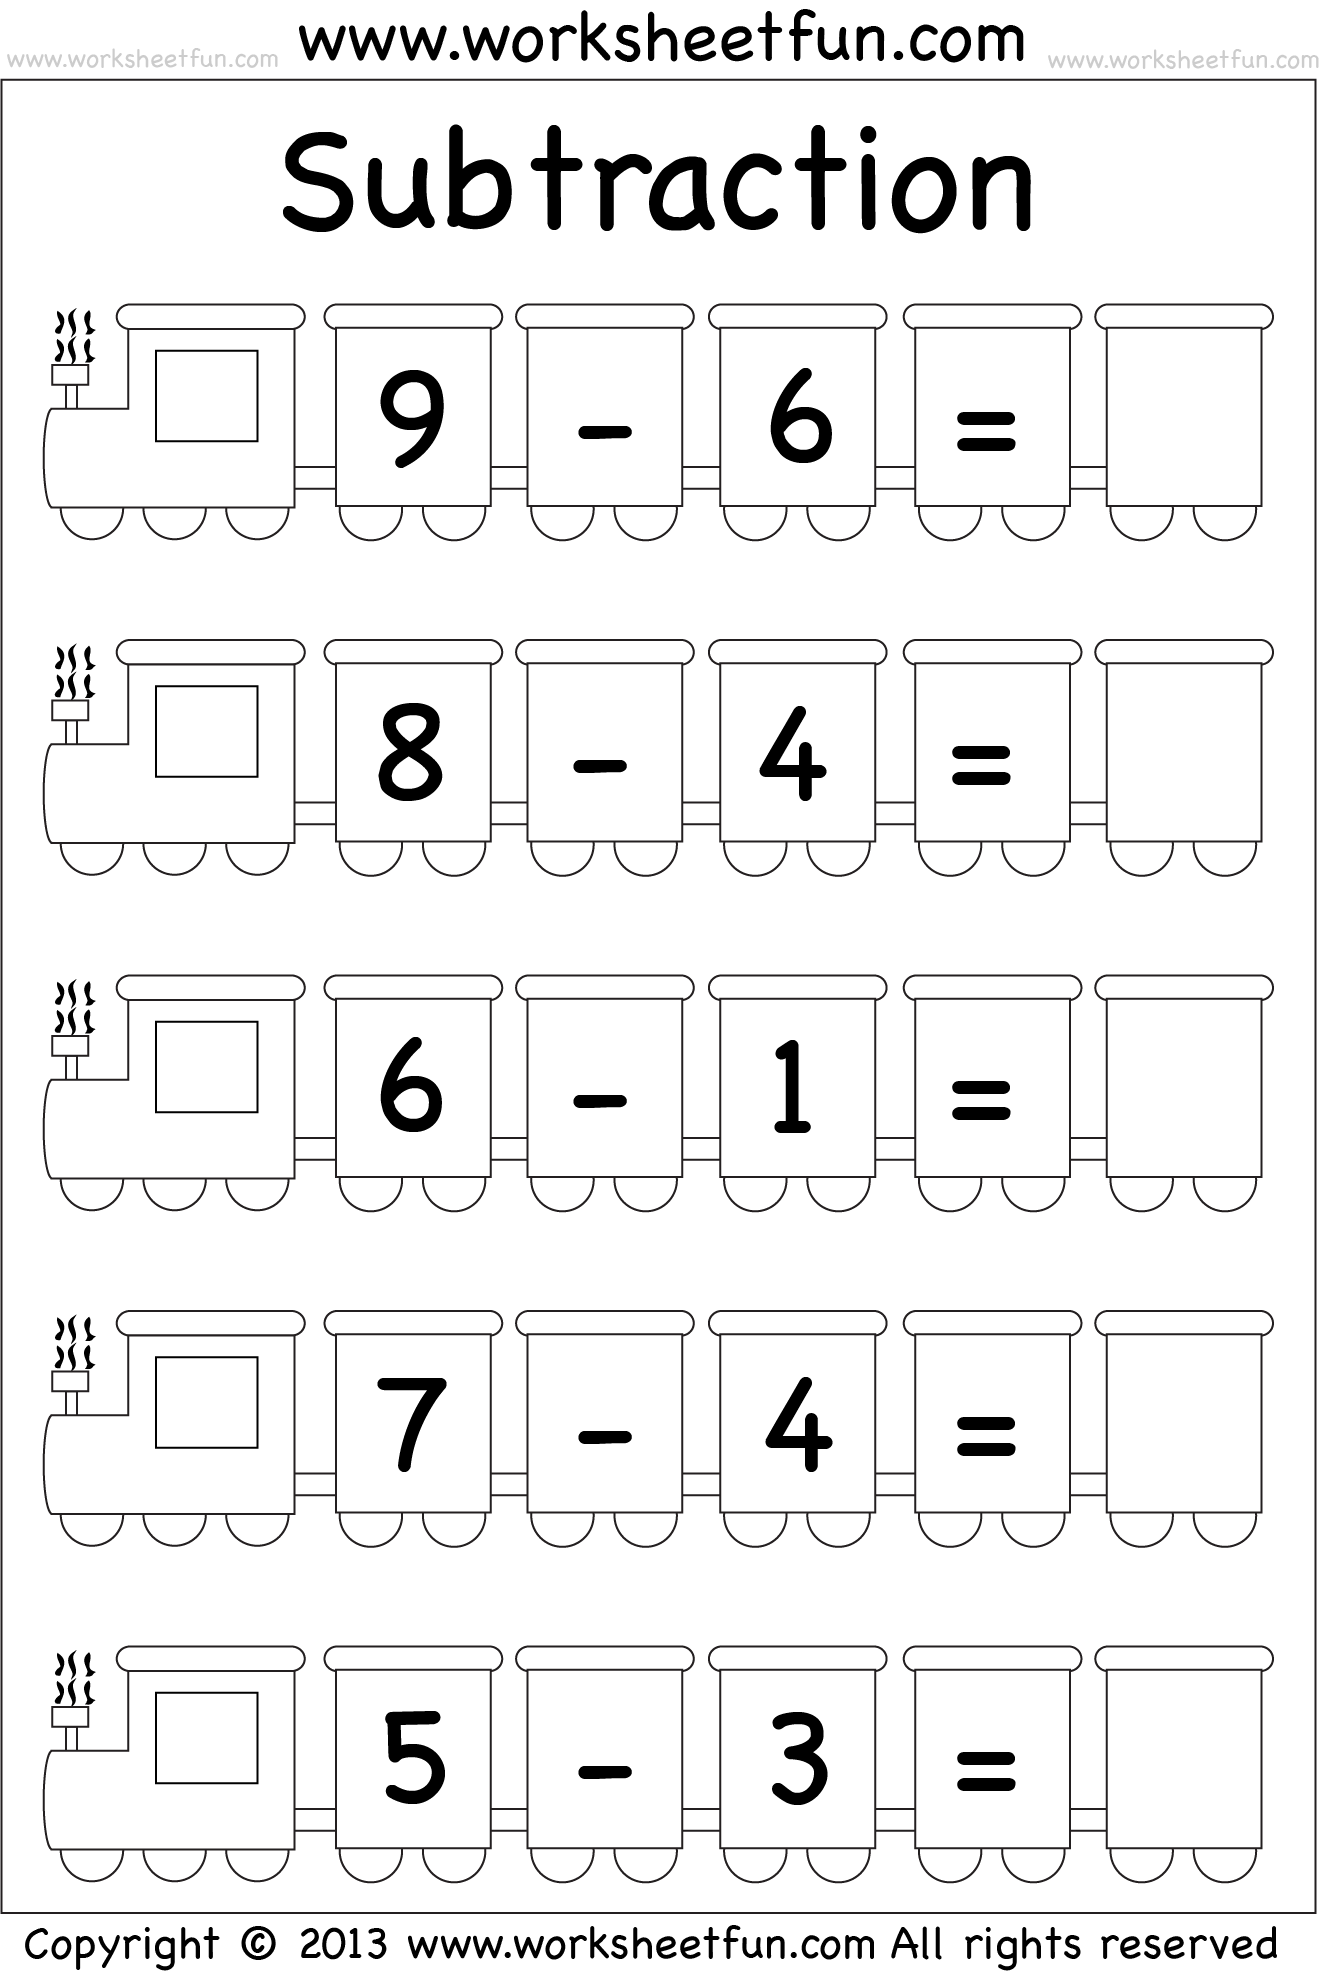 math worksheet : subtraction worksheet  math computation  pinterest  subtraction  : Simple Subtraction Worksheets For Kindergarten